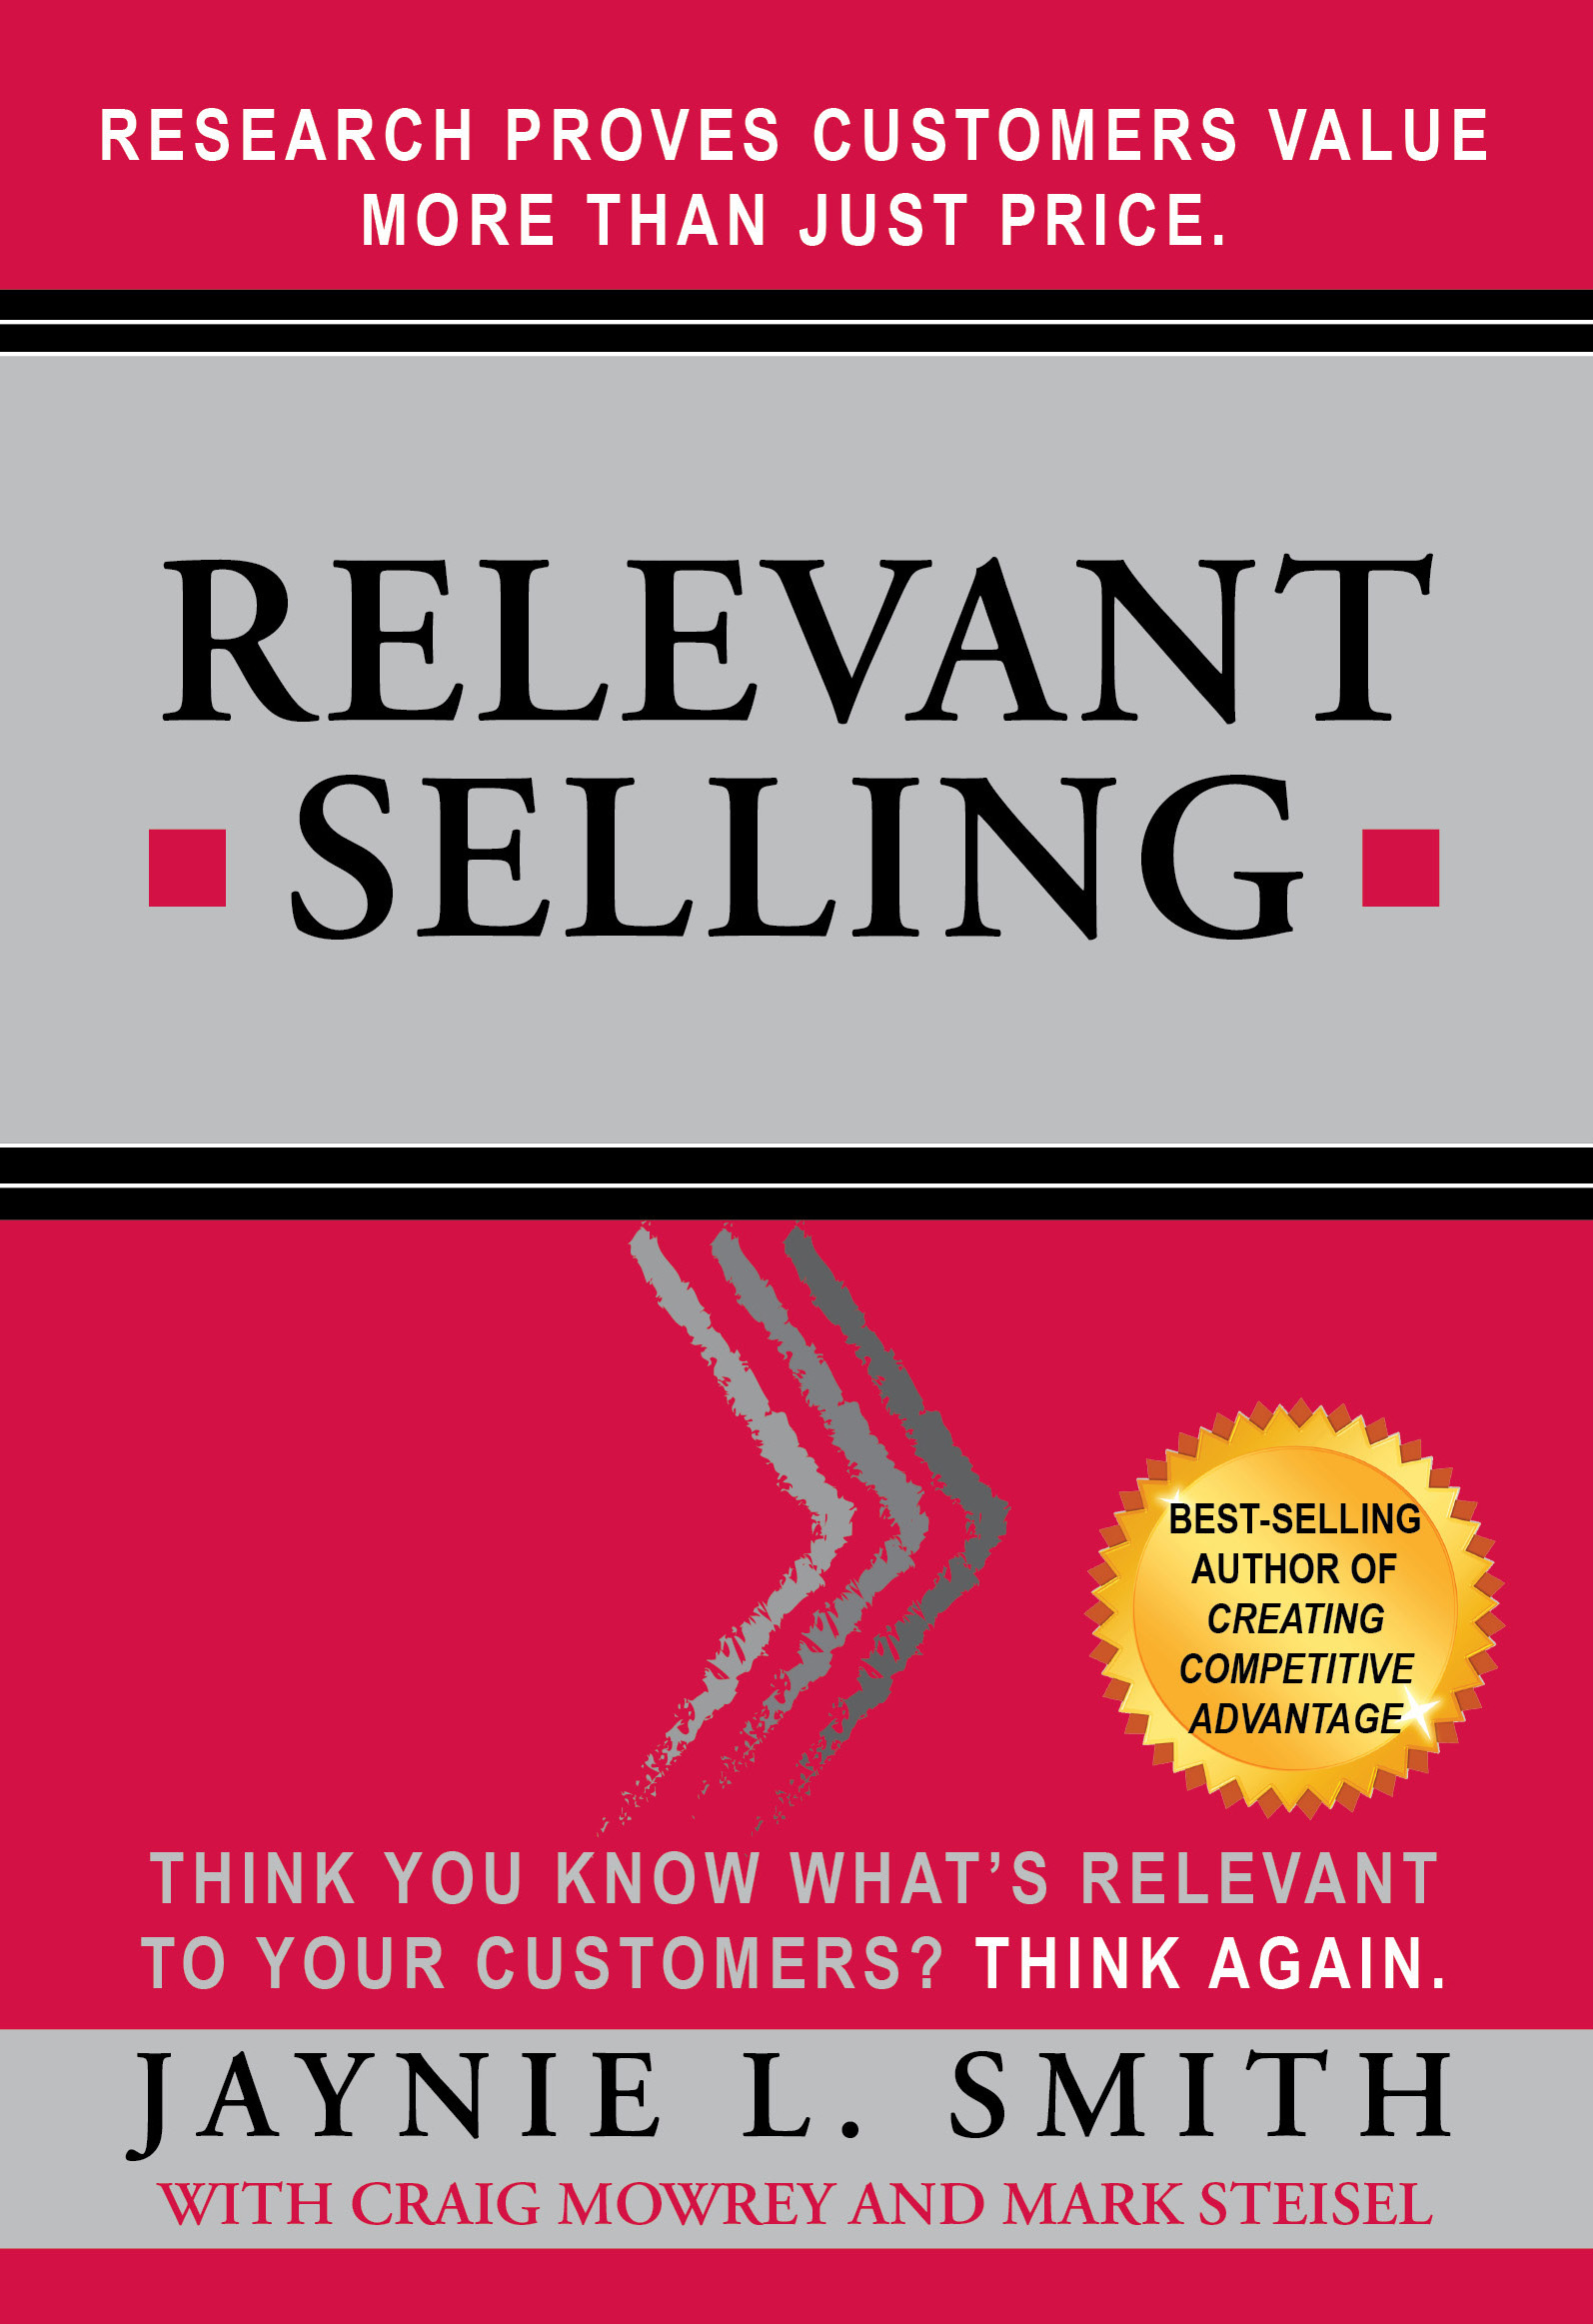 Relevant-selling--research-proves-customers-value-more-than-just-price